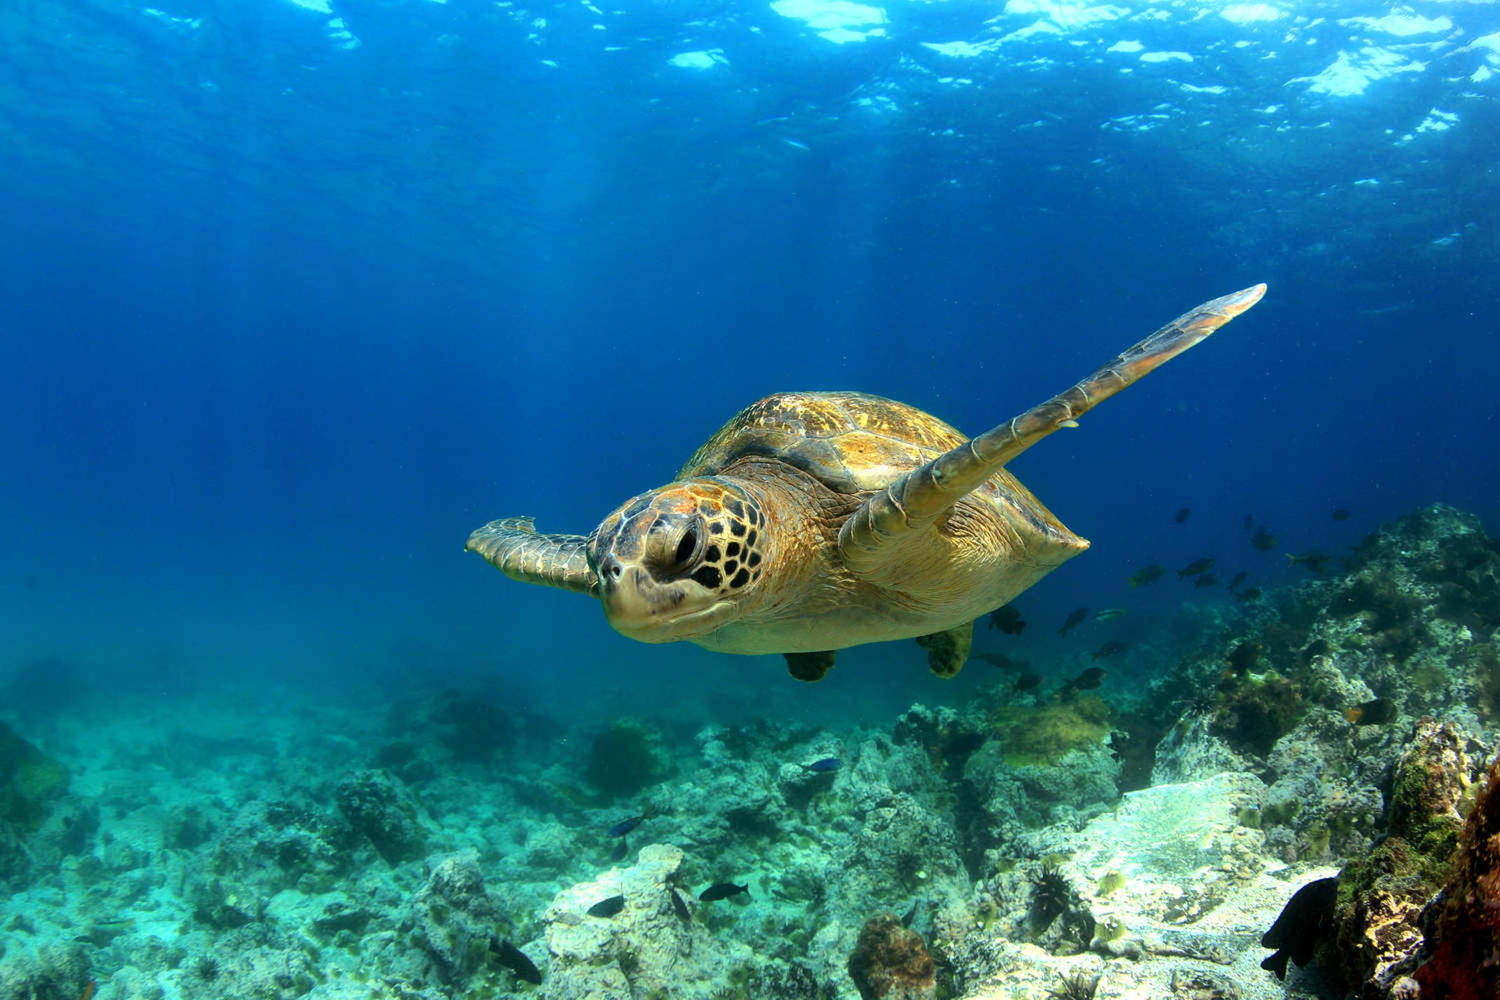 Green sea turtle swimming underwater